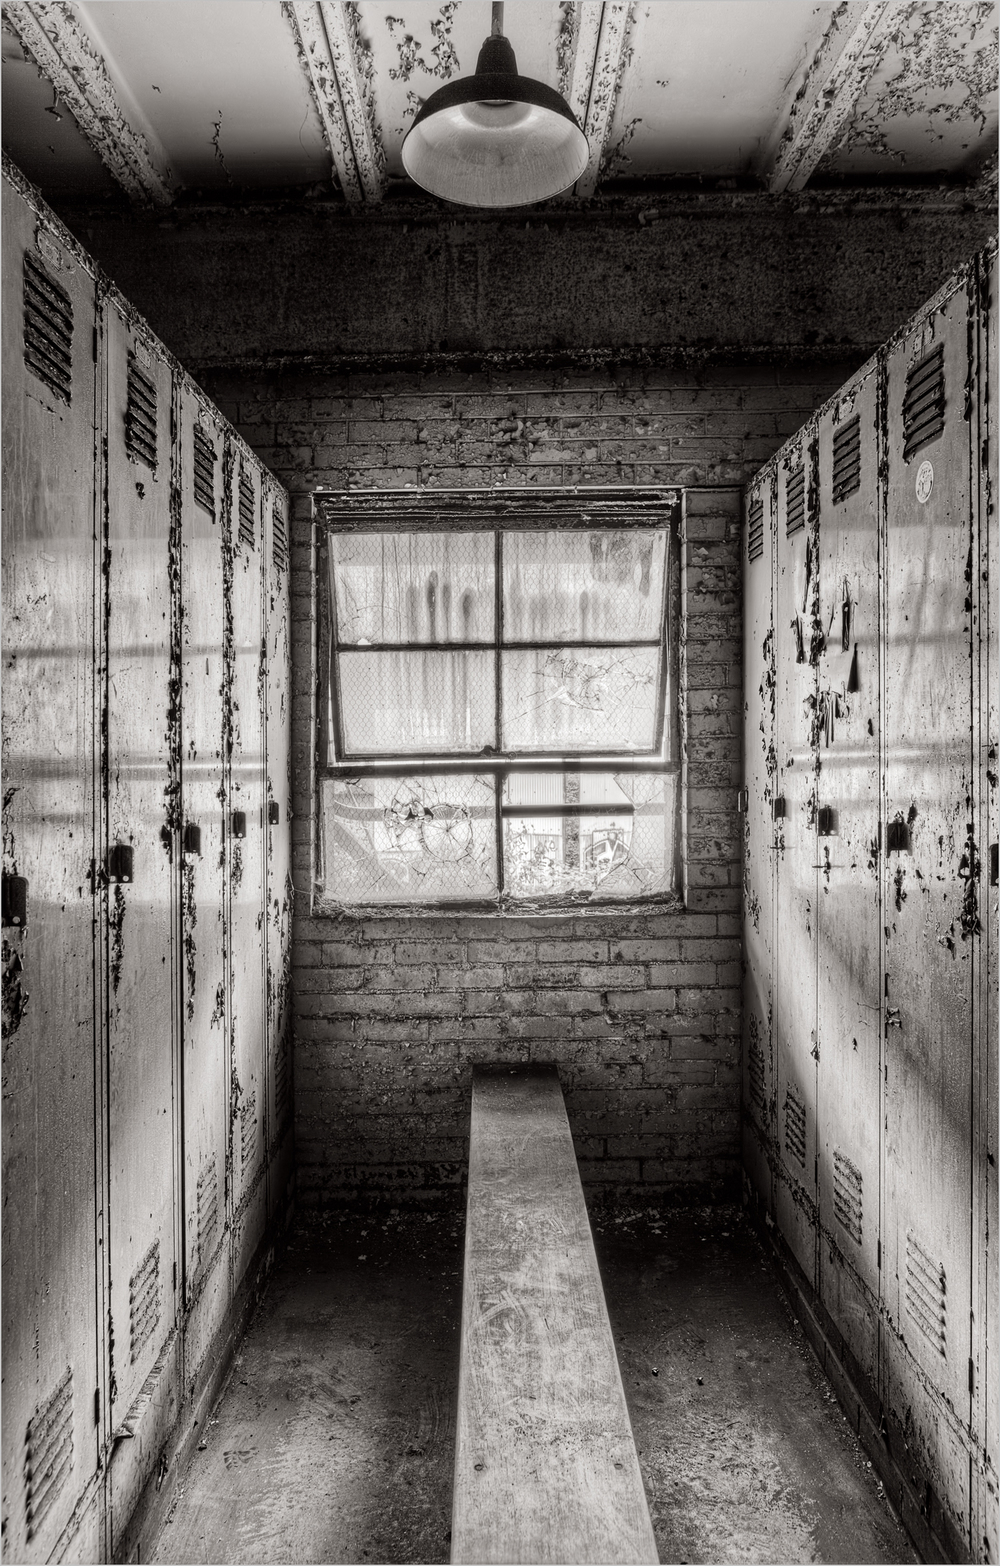 The workmen's locker room at the Carrie Furnace.